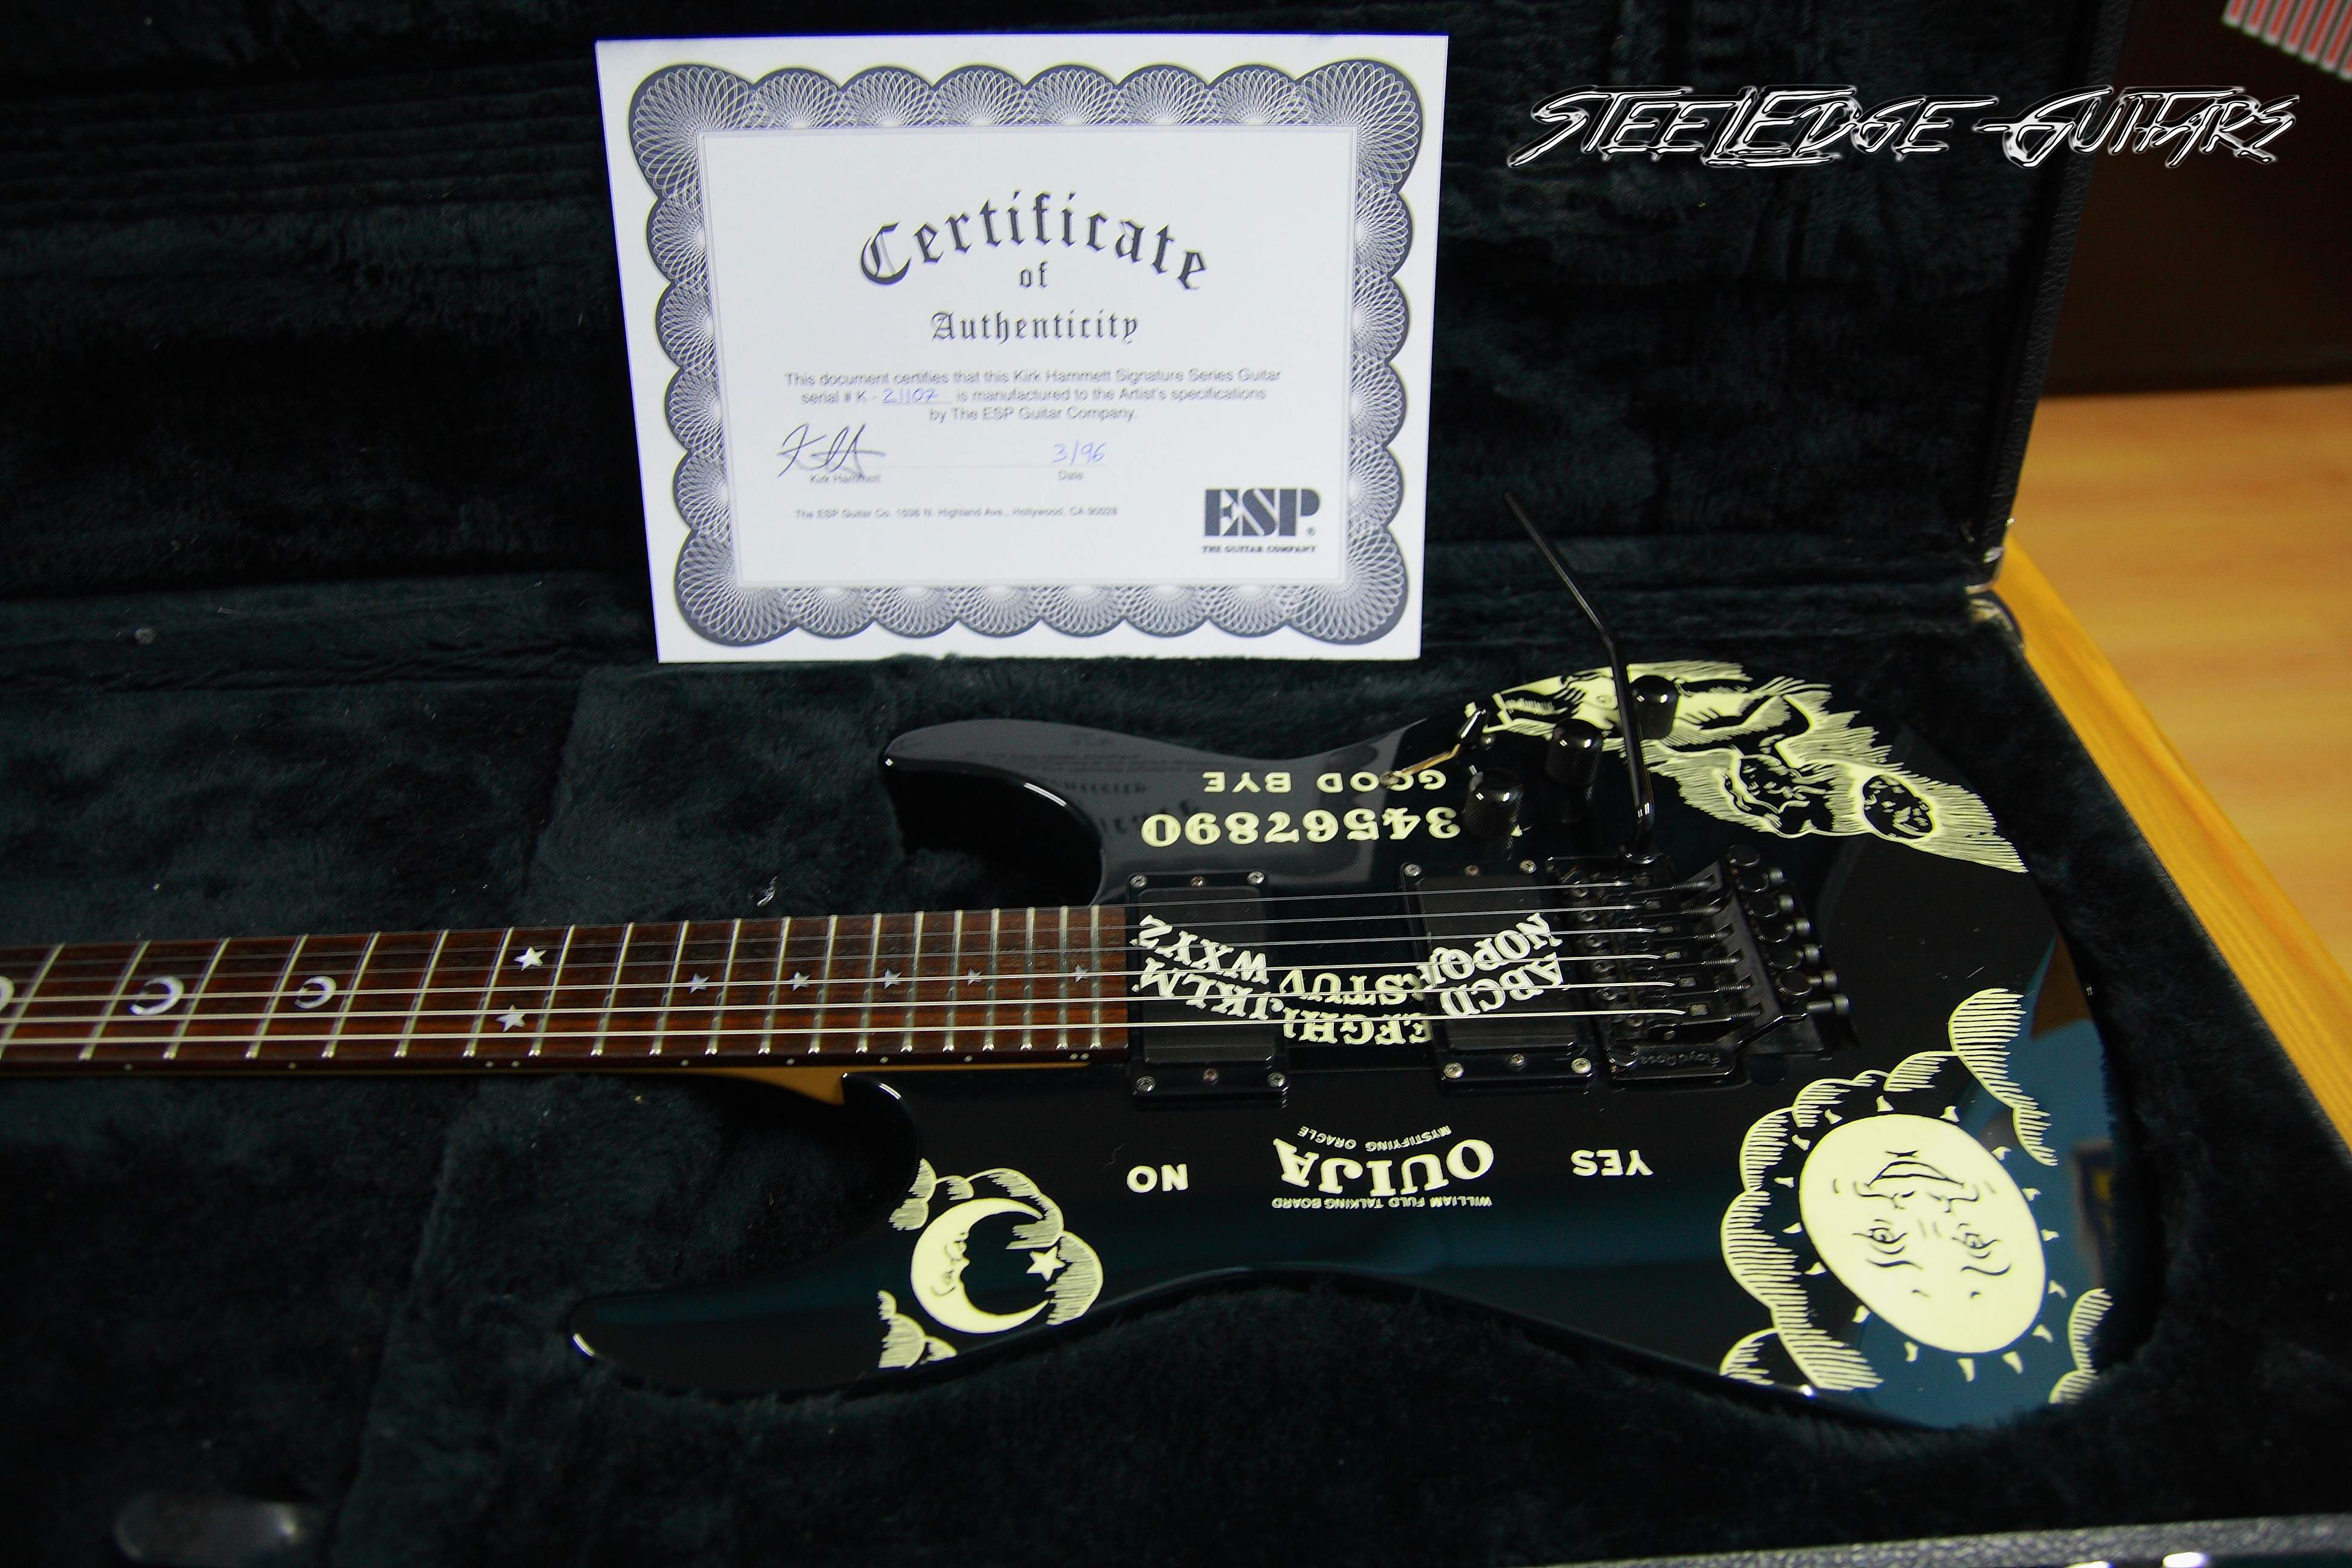 Hookup Esp Guitars By Serial Number